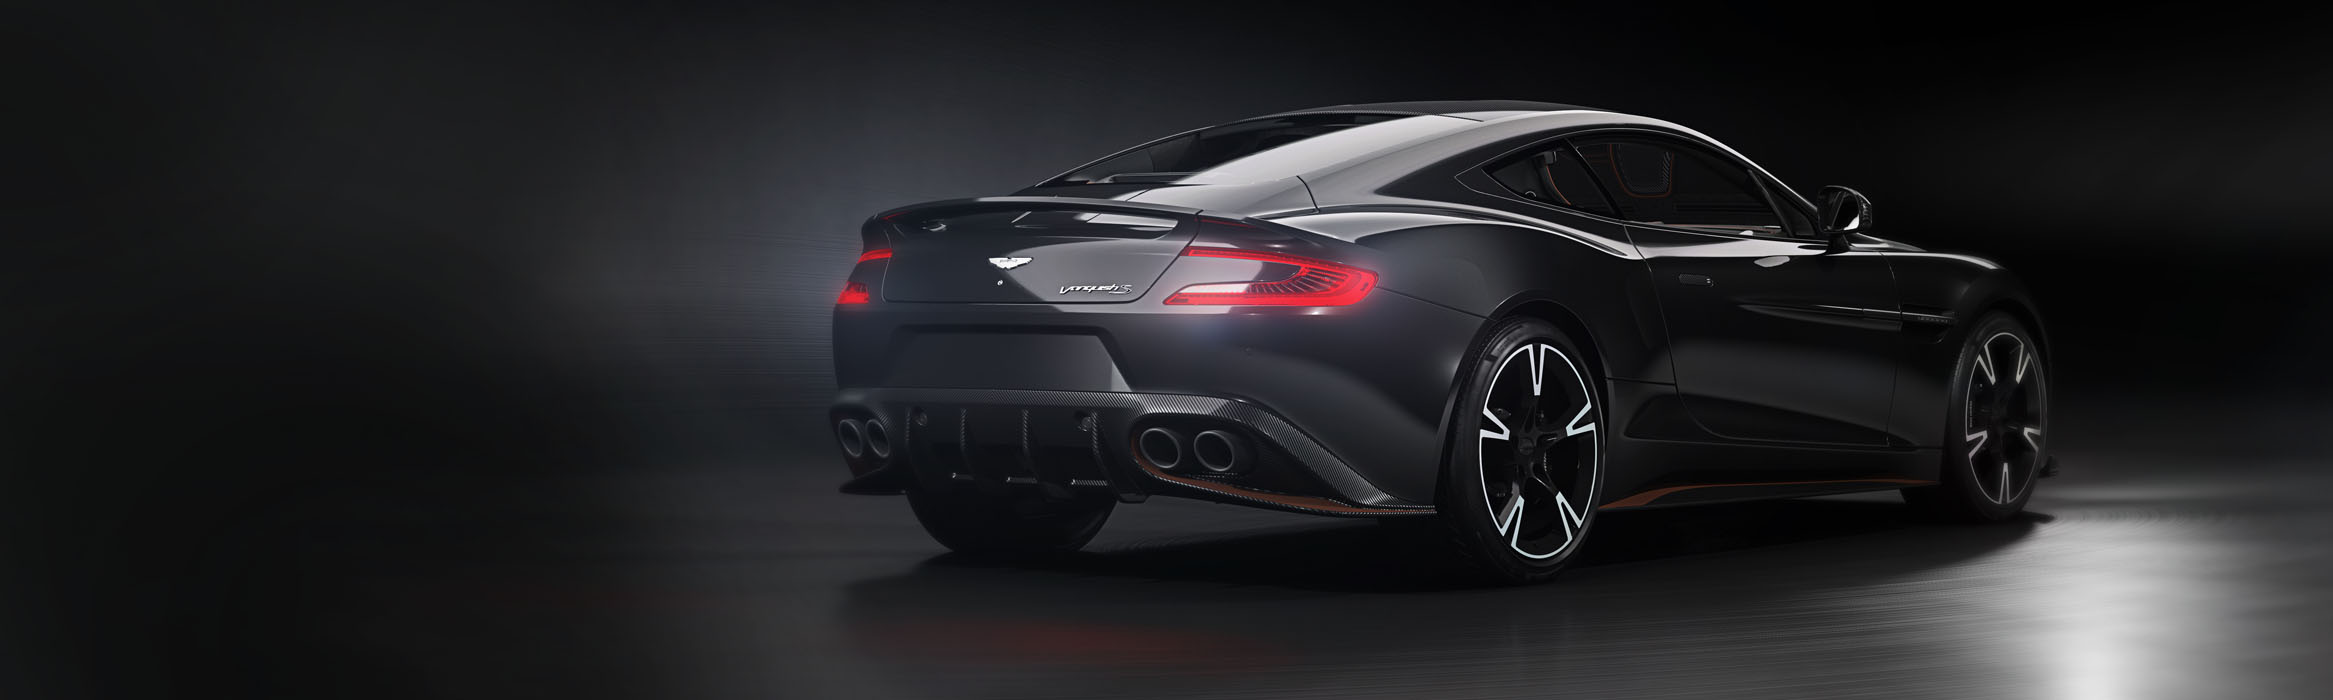 Aston Martin Singapore Official Aston Martin Dealer - How much do aston martins cost